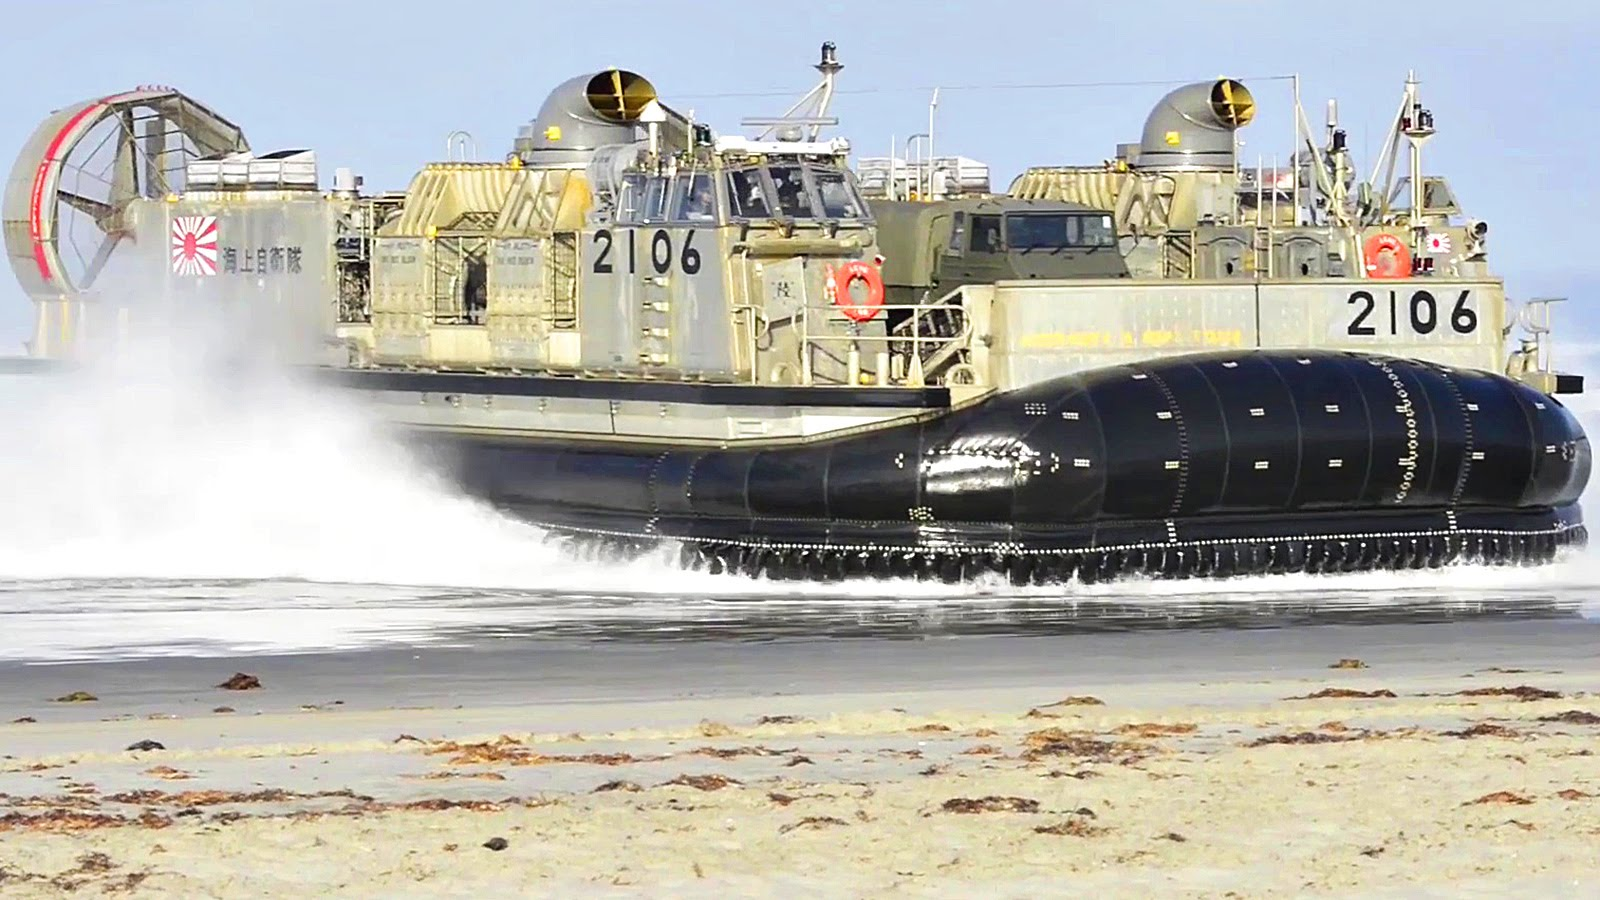 Japanese & American Military Hovercrafts Storm The Beach